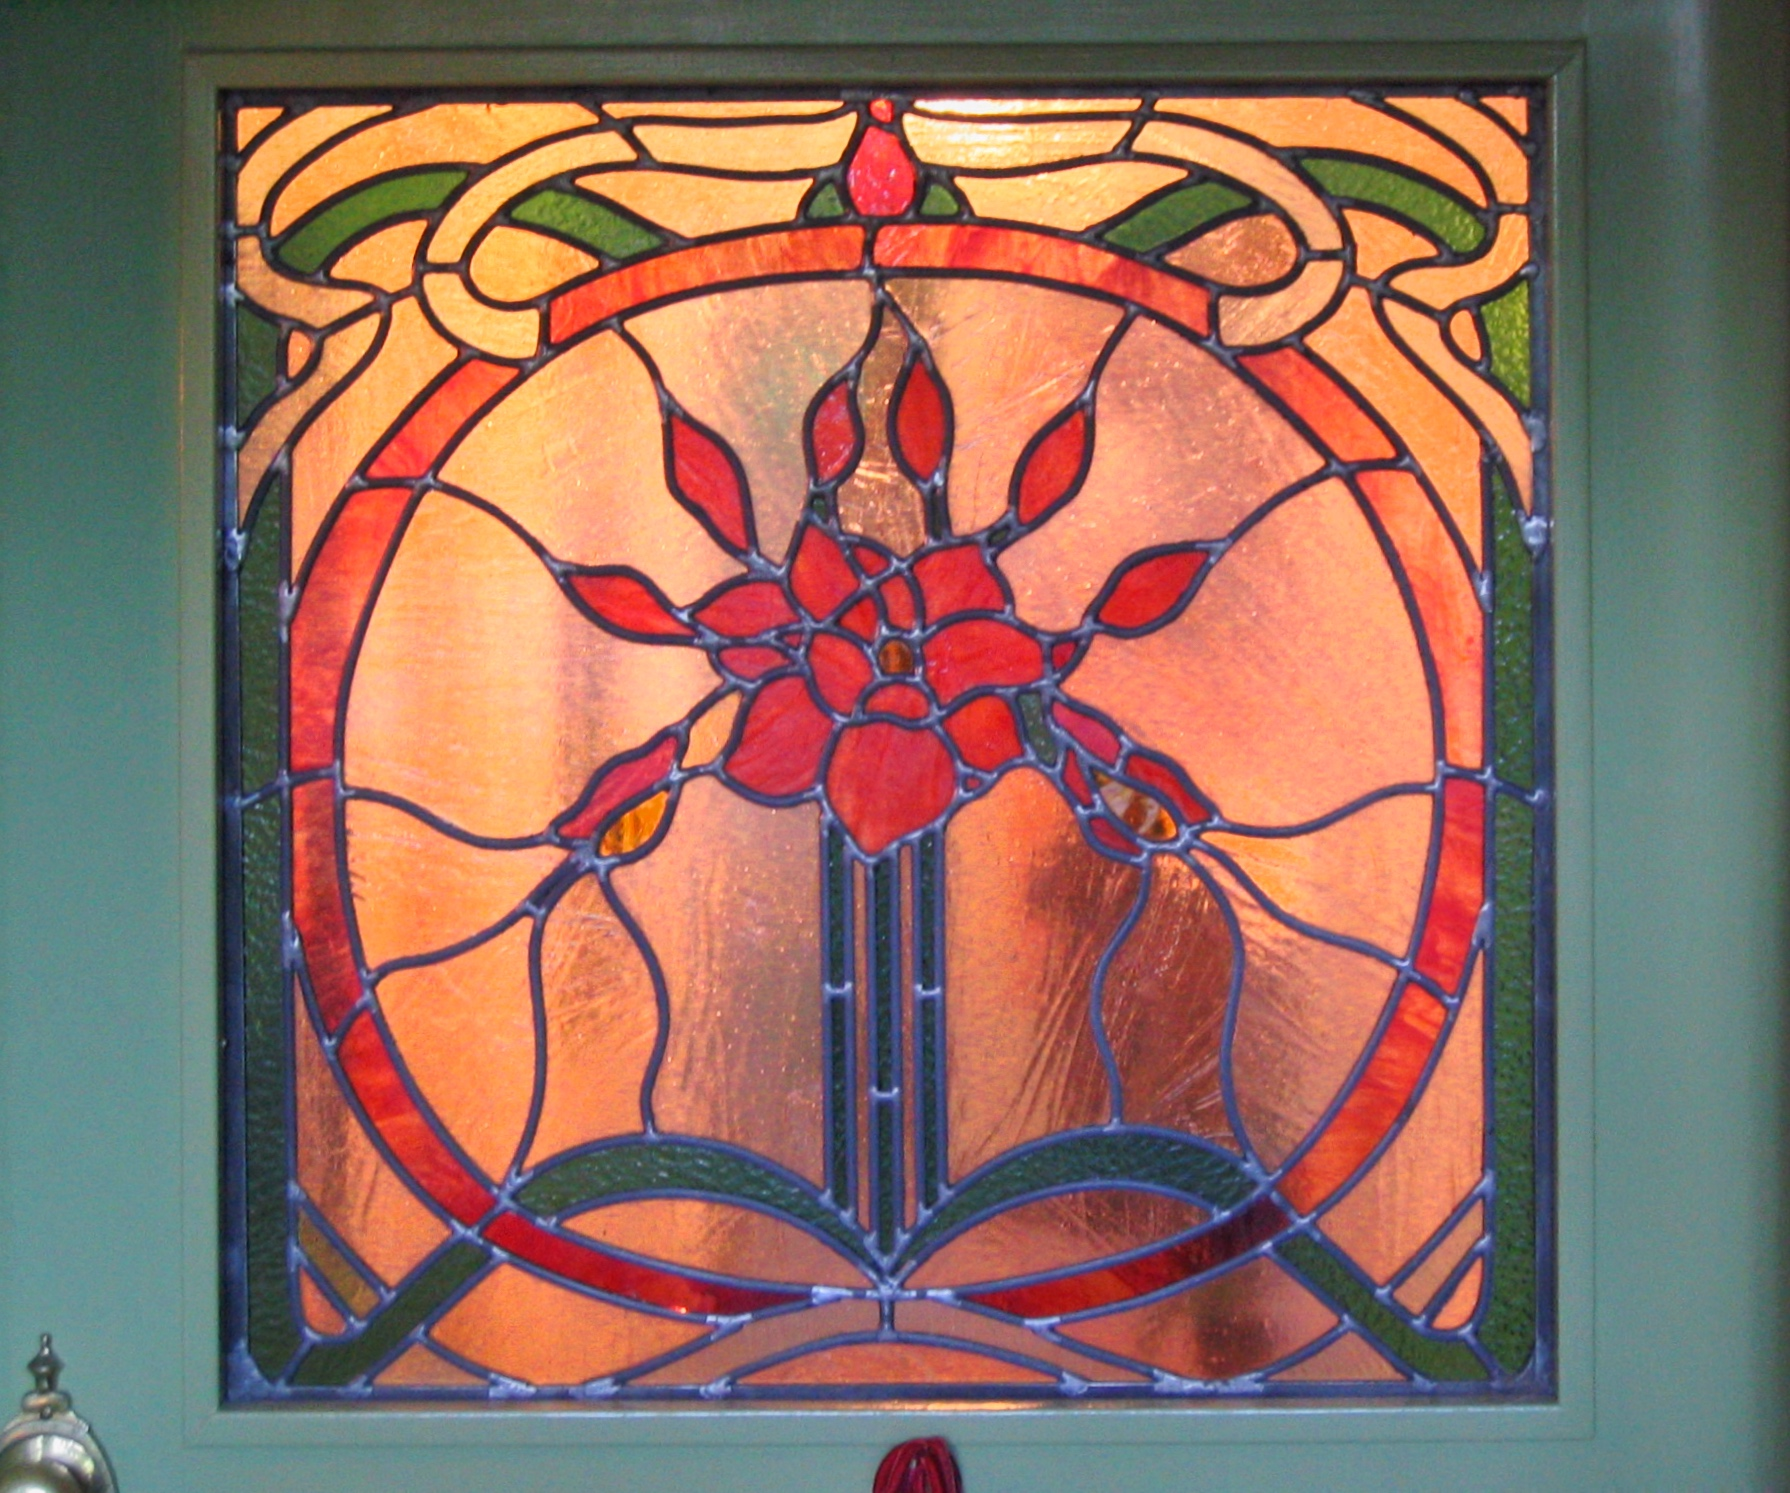 custom stained glass leaded glass front door window insert art deco rose medallion motif round victorian art nouveau privacy glass legacy glass studios.jpg